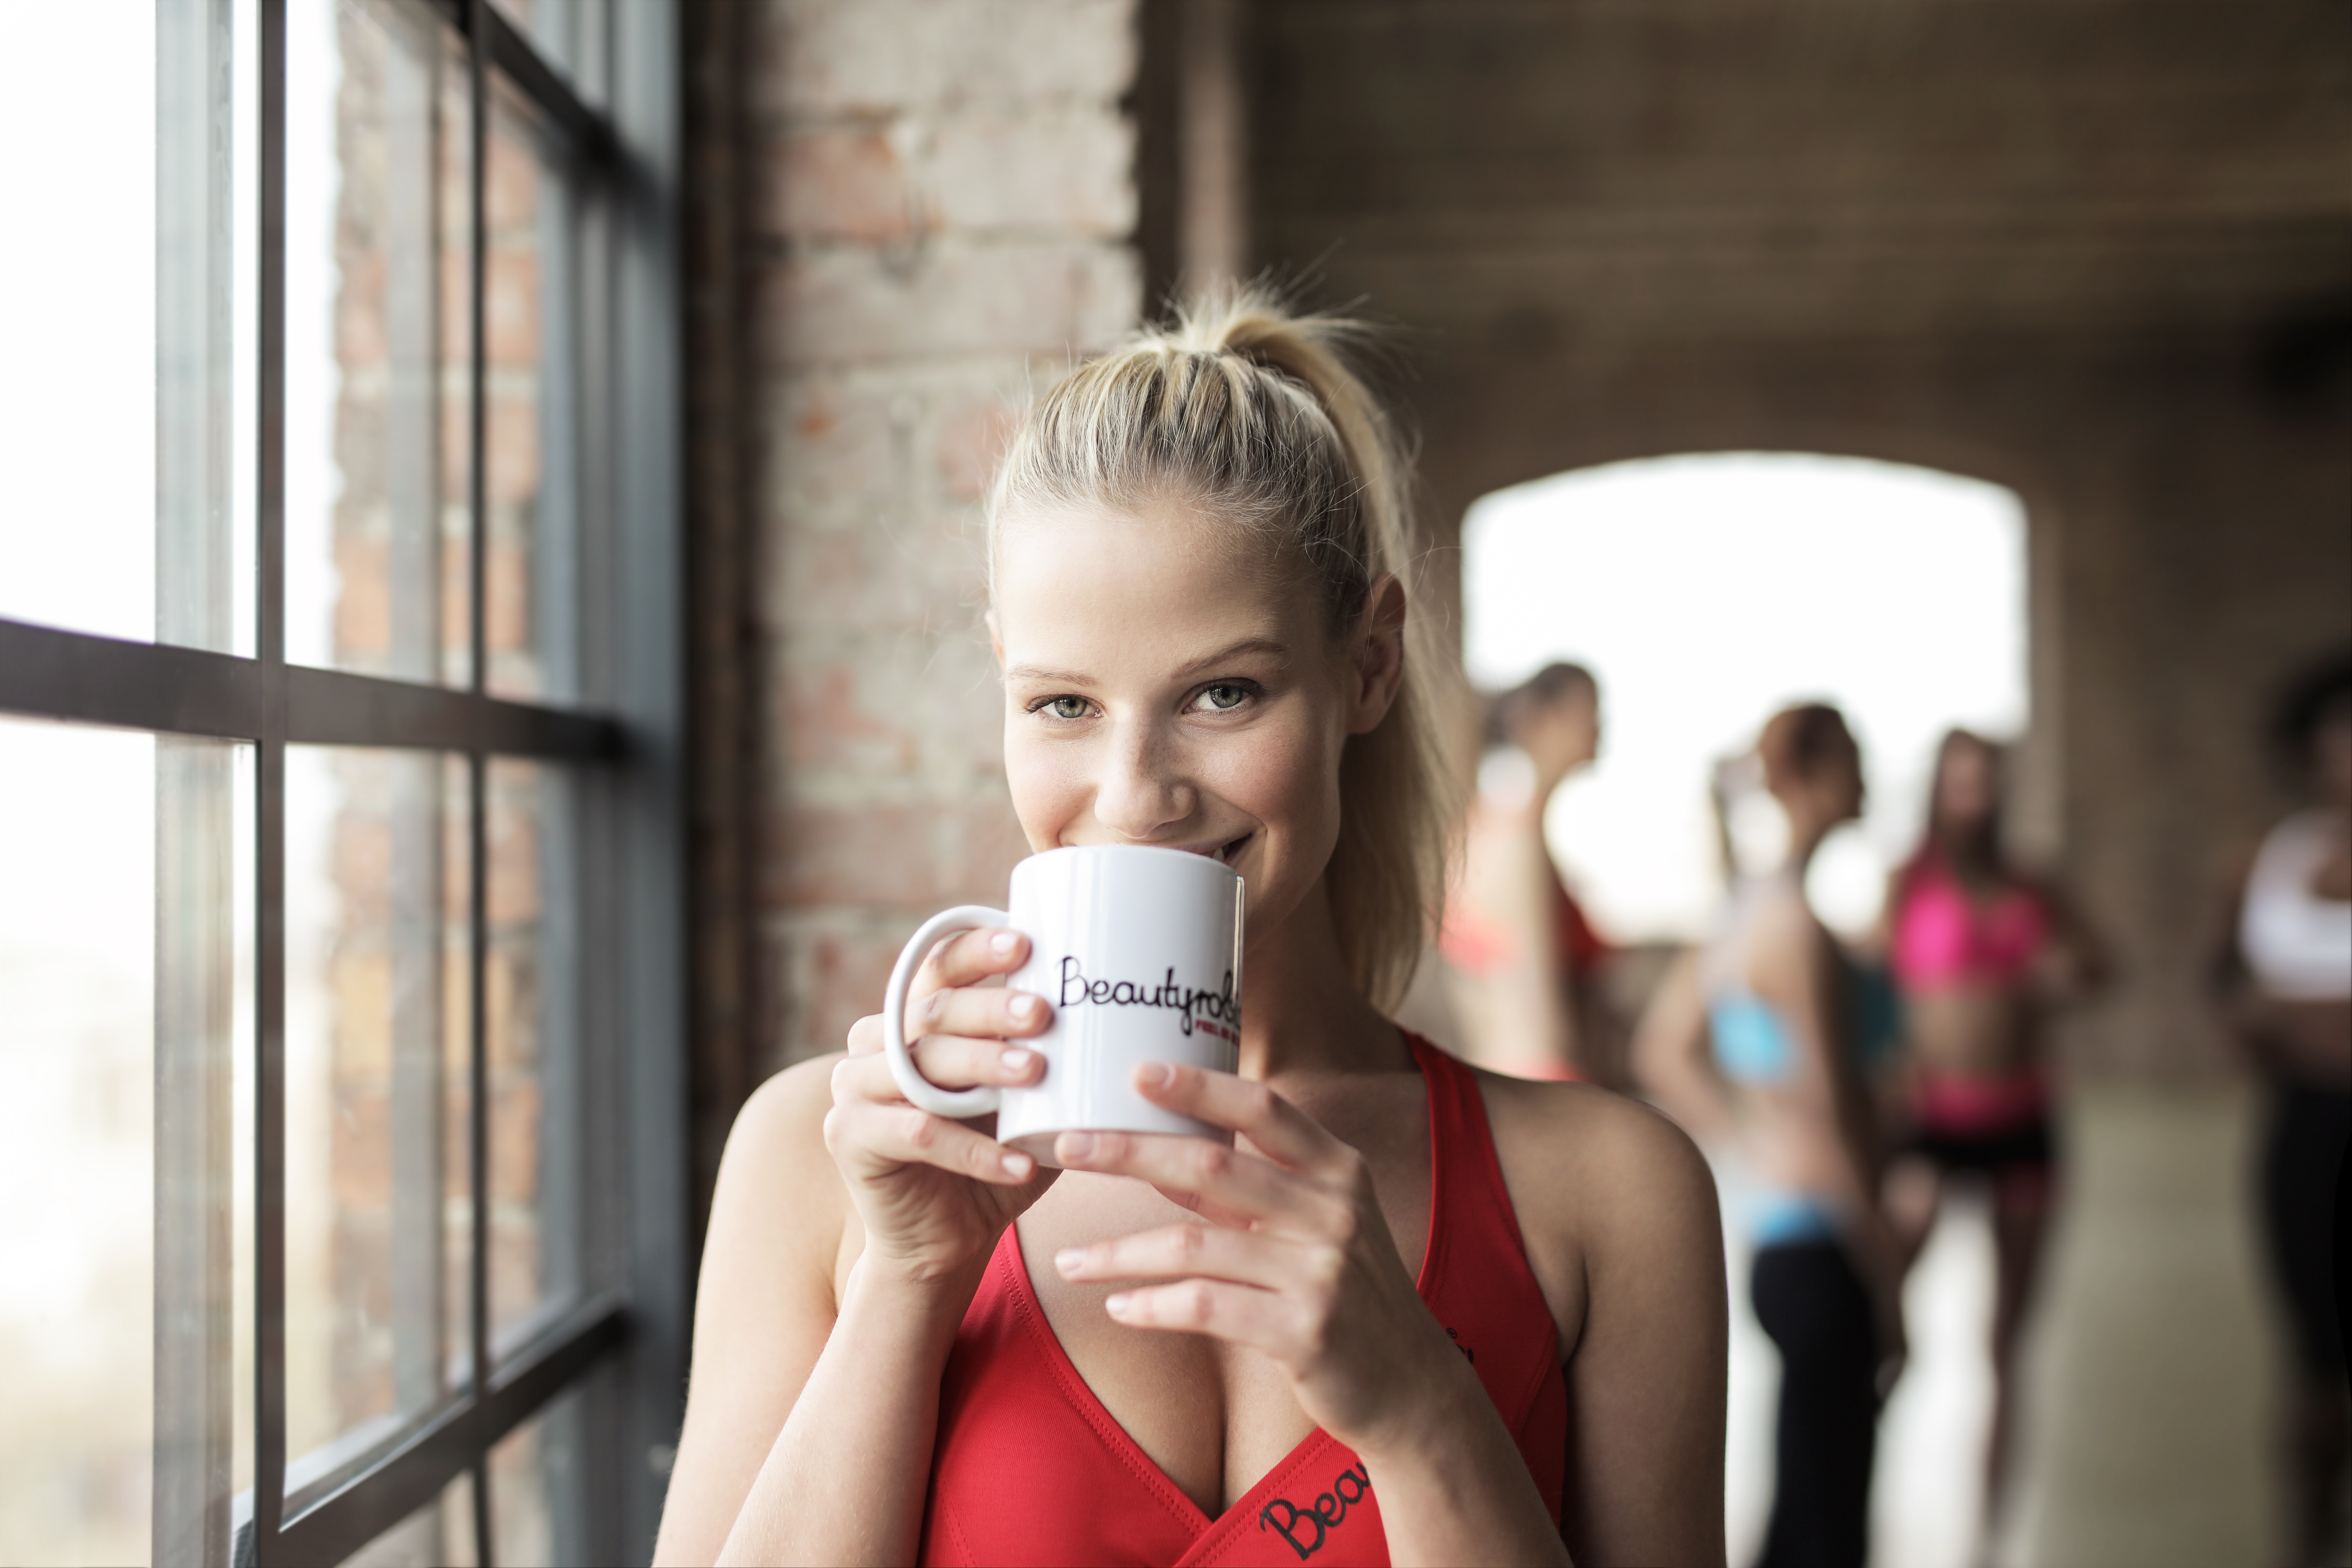 Woman in Red Scoop-neck Tank Top Holding White Mug, Beauty, Women, Windows, White, HQ Photo